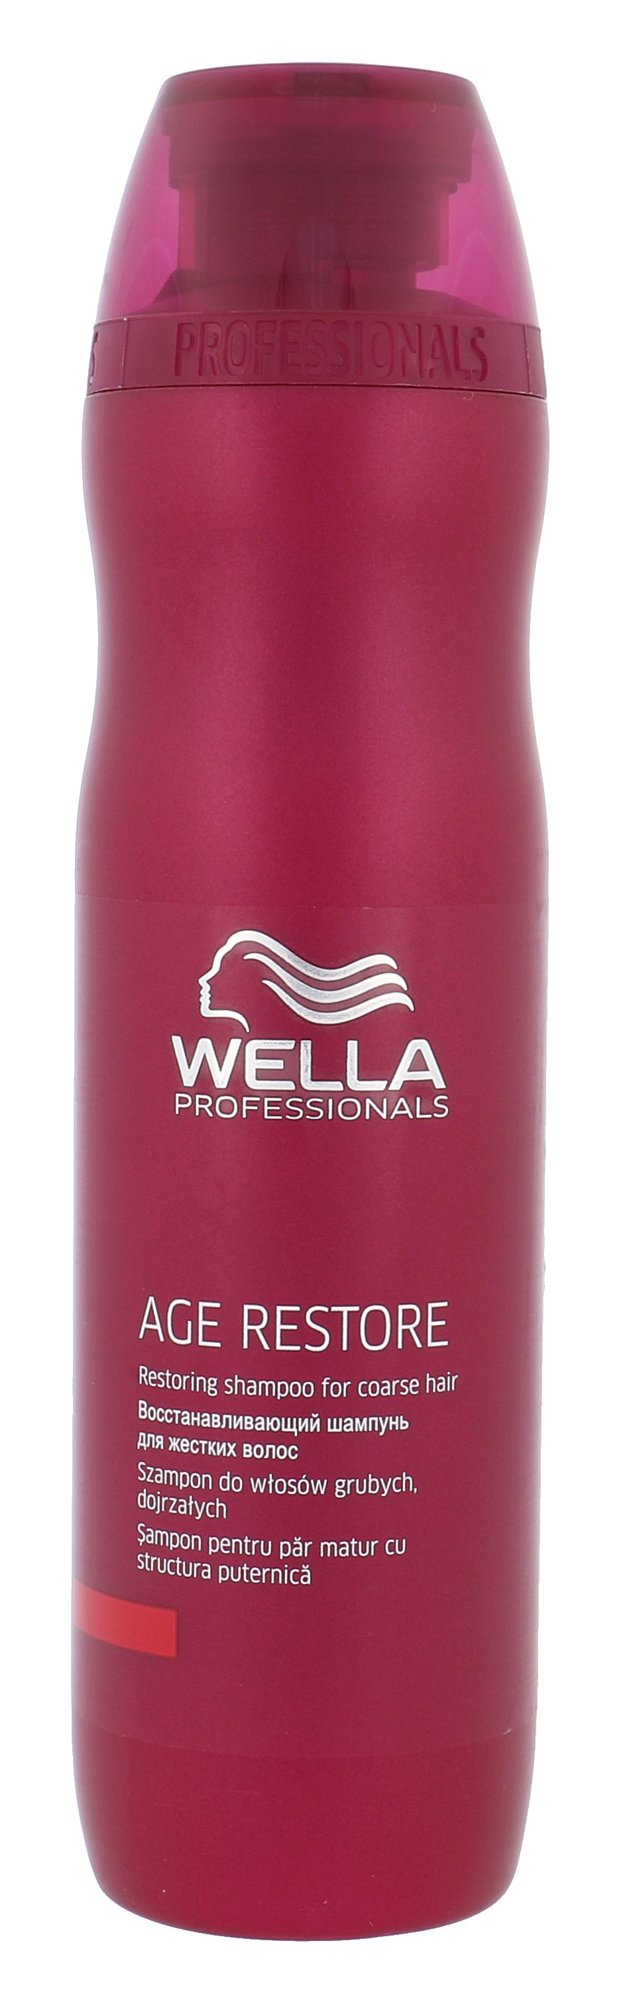 Wella Age Restore Cosmetic 250ml